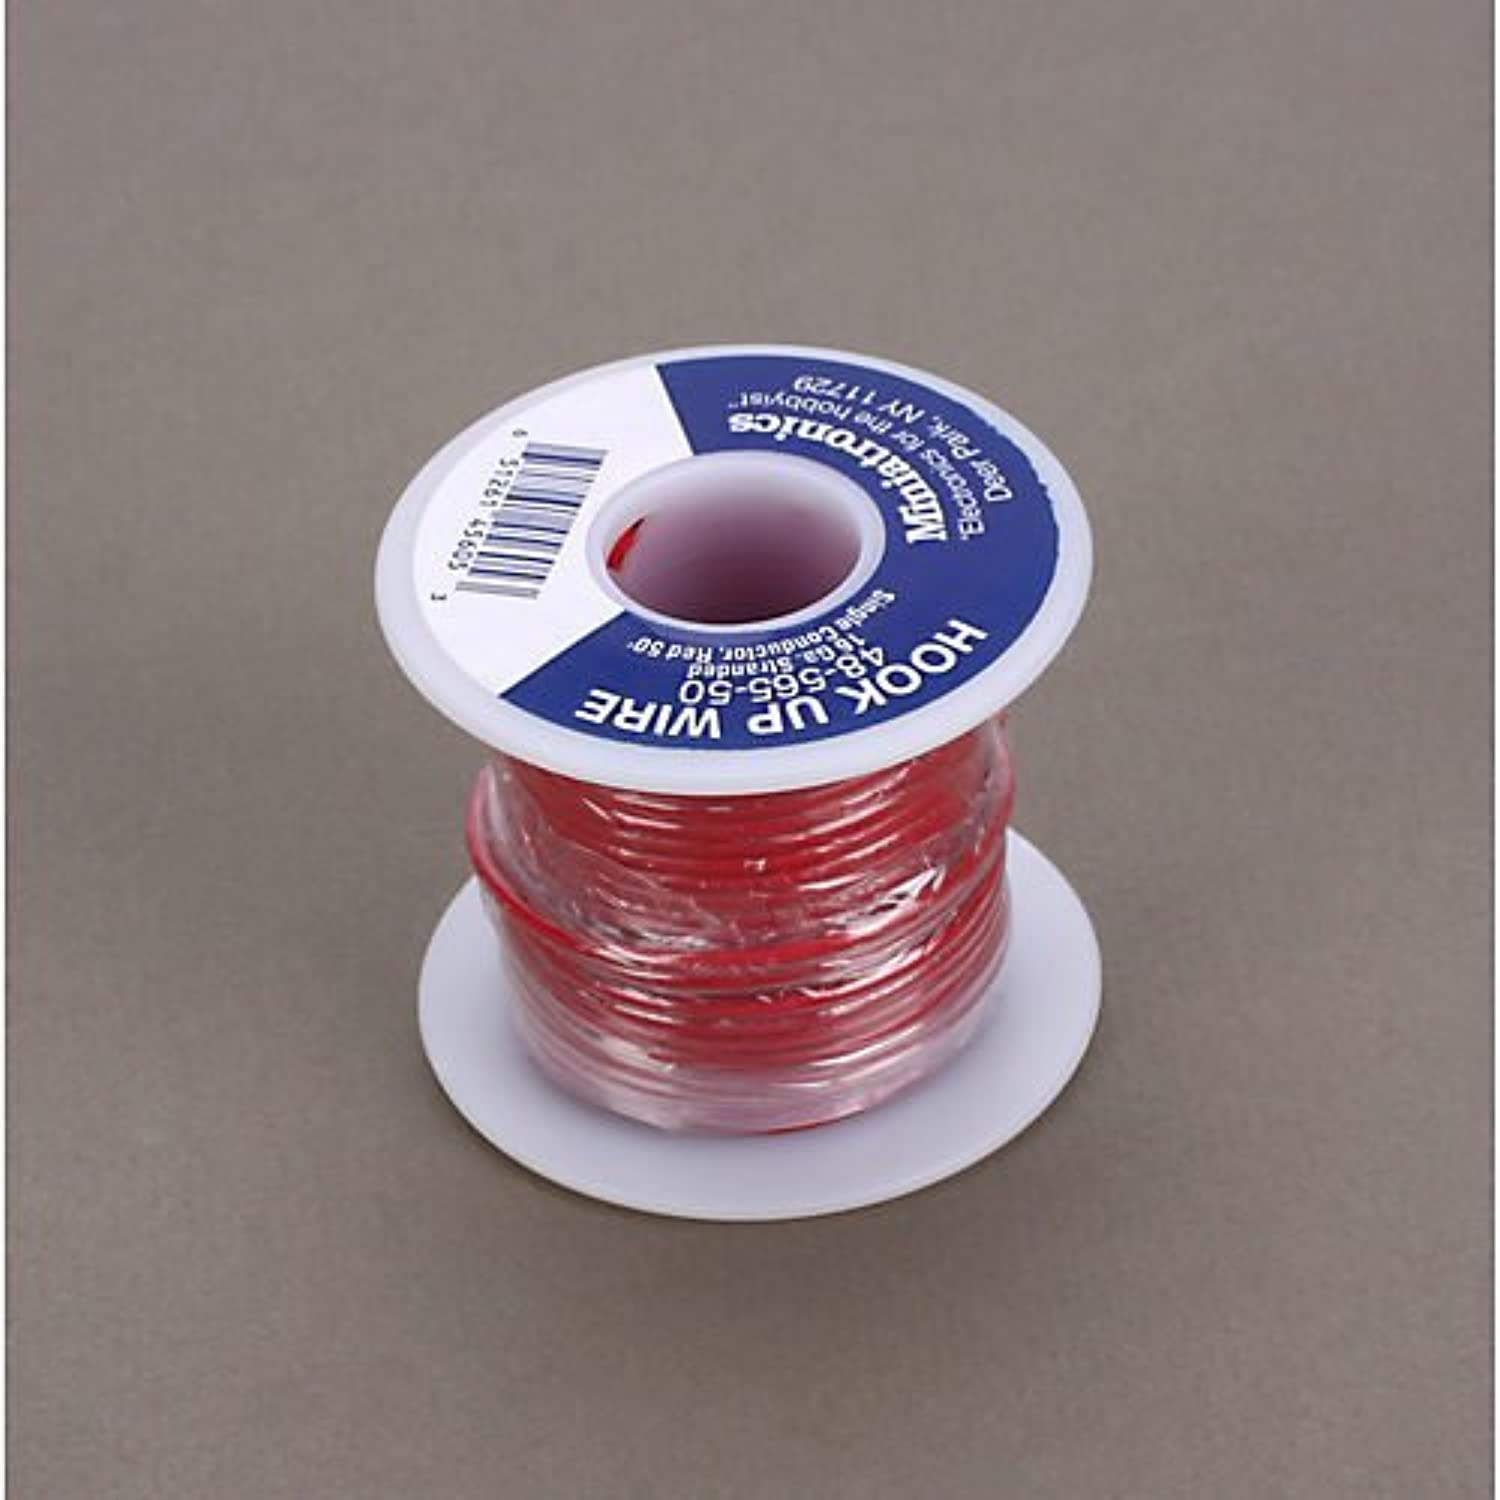 50' Stranded Wire 16 Gauge, rot by Miniatronics Corp